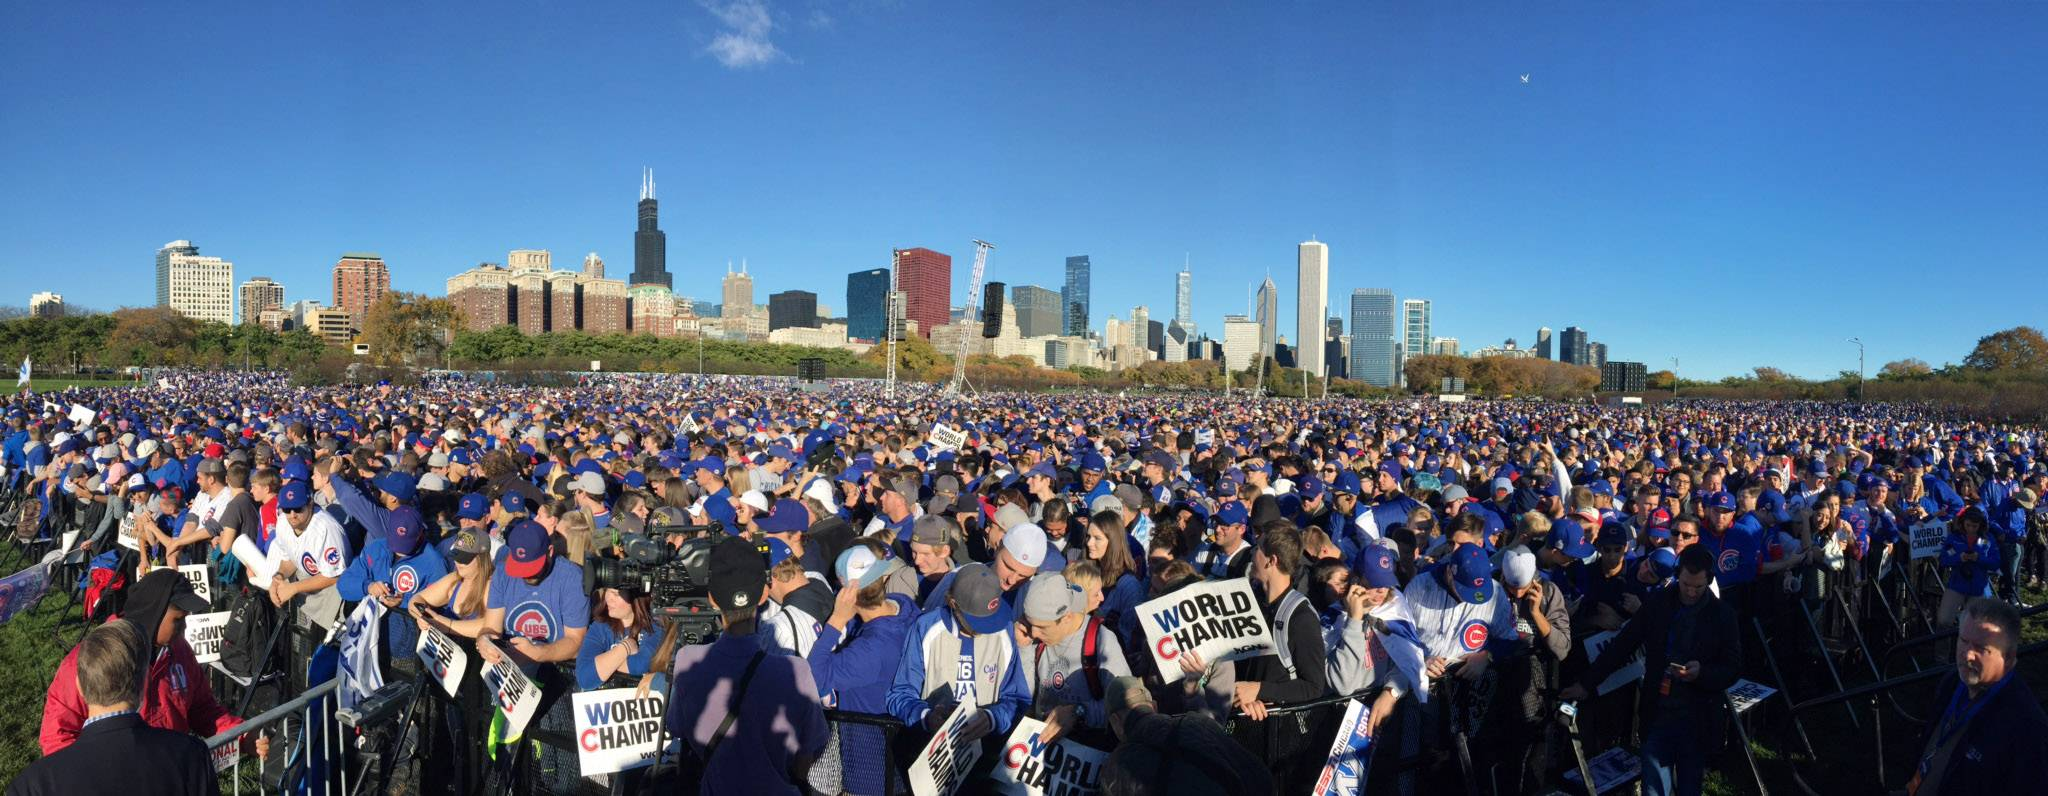 Blue is the color of the day as Cubs fans pack the rally site Friday morning in Chicago's Grant Park.